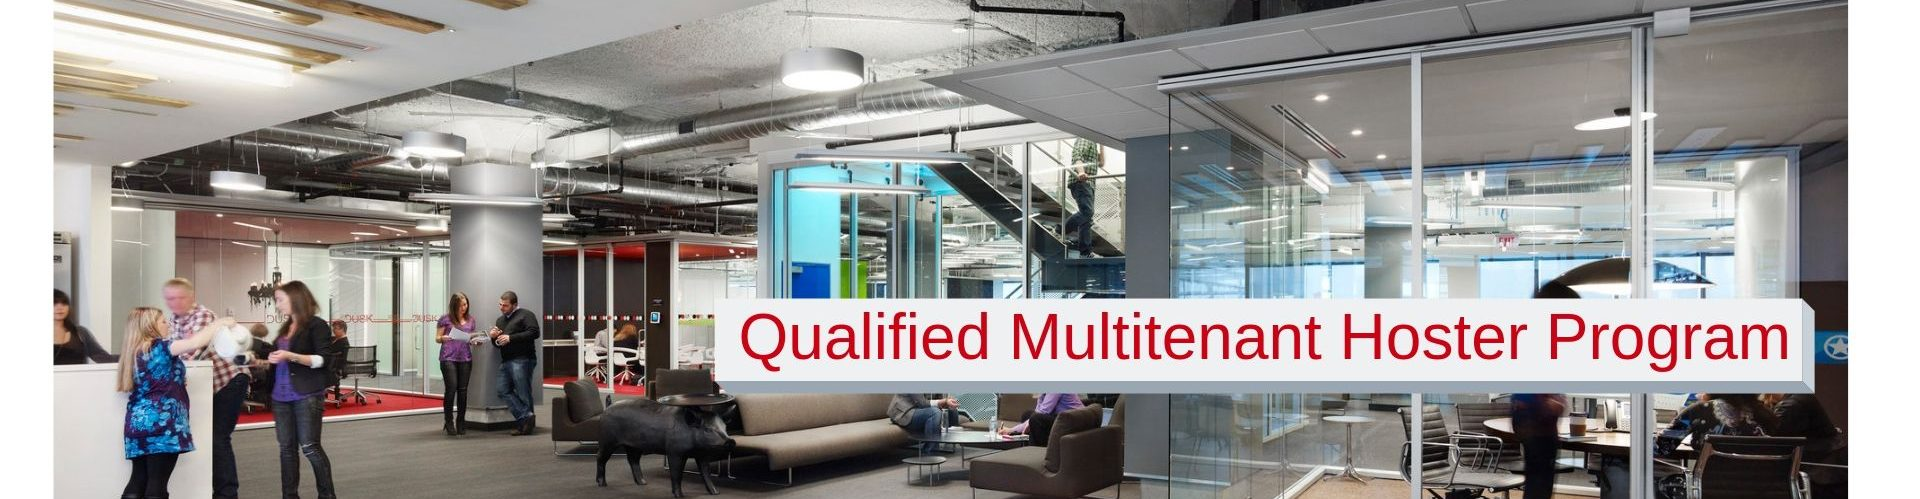 Qualified Multitenant Hoster Program